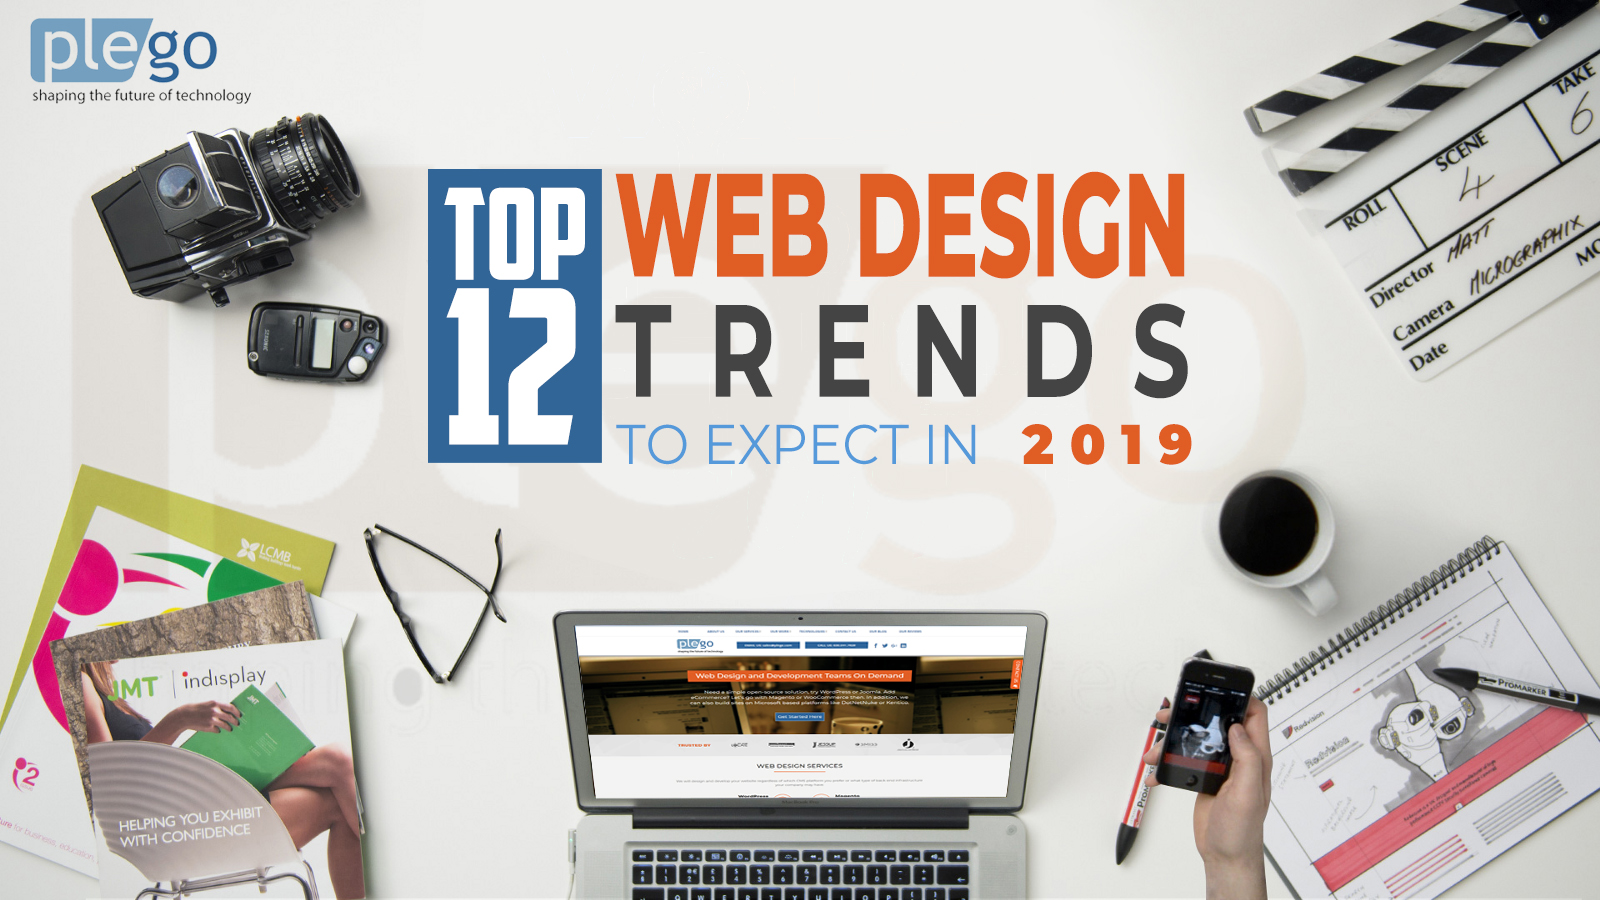 Top 12 Web Design Trends to Expect in 2019